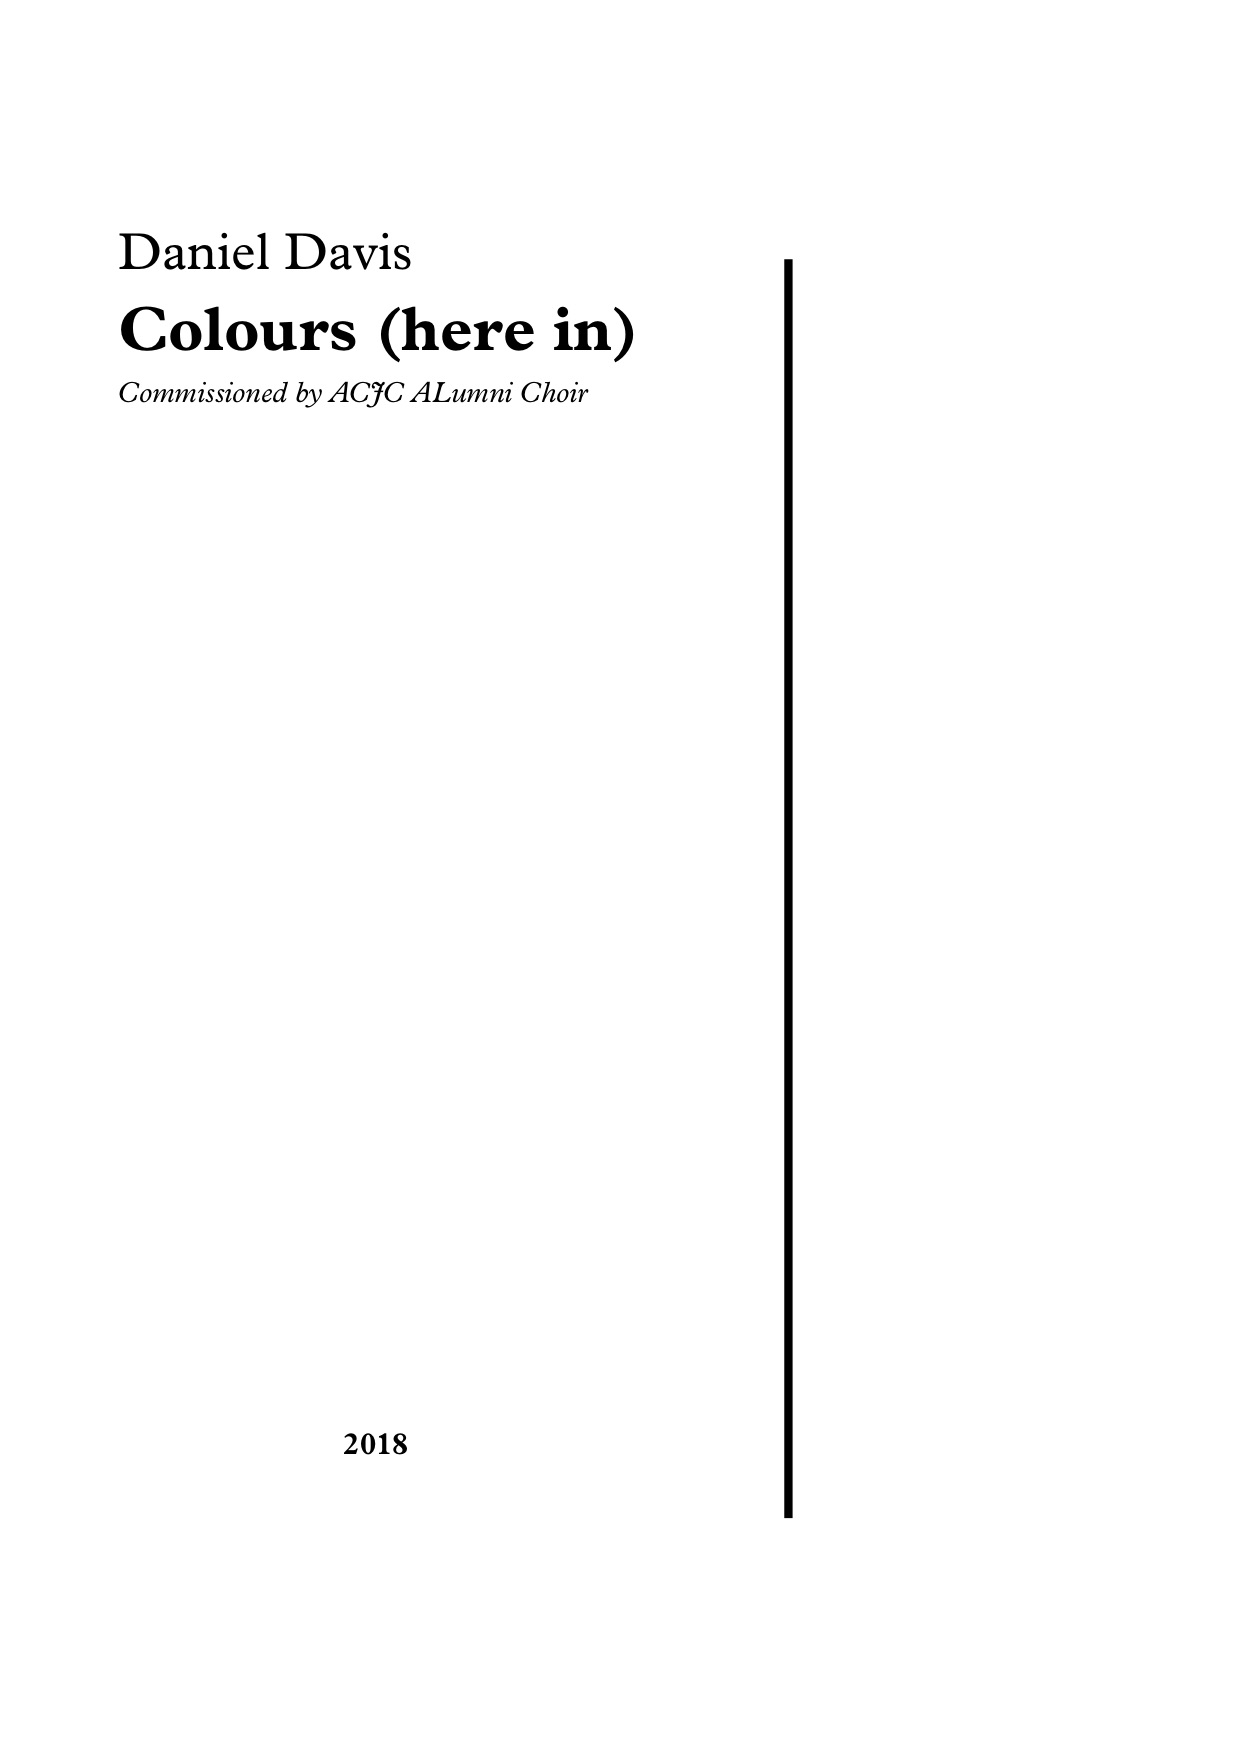 Colours (here in) - (2018)